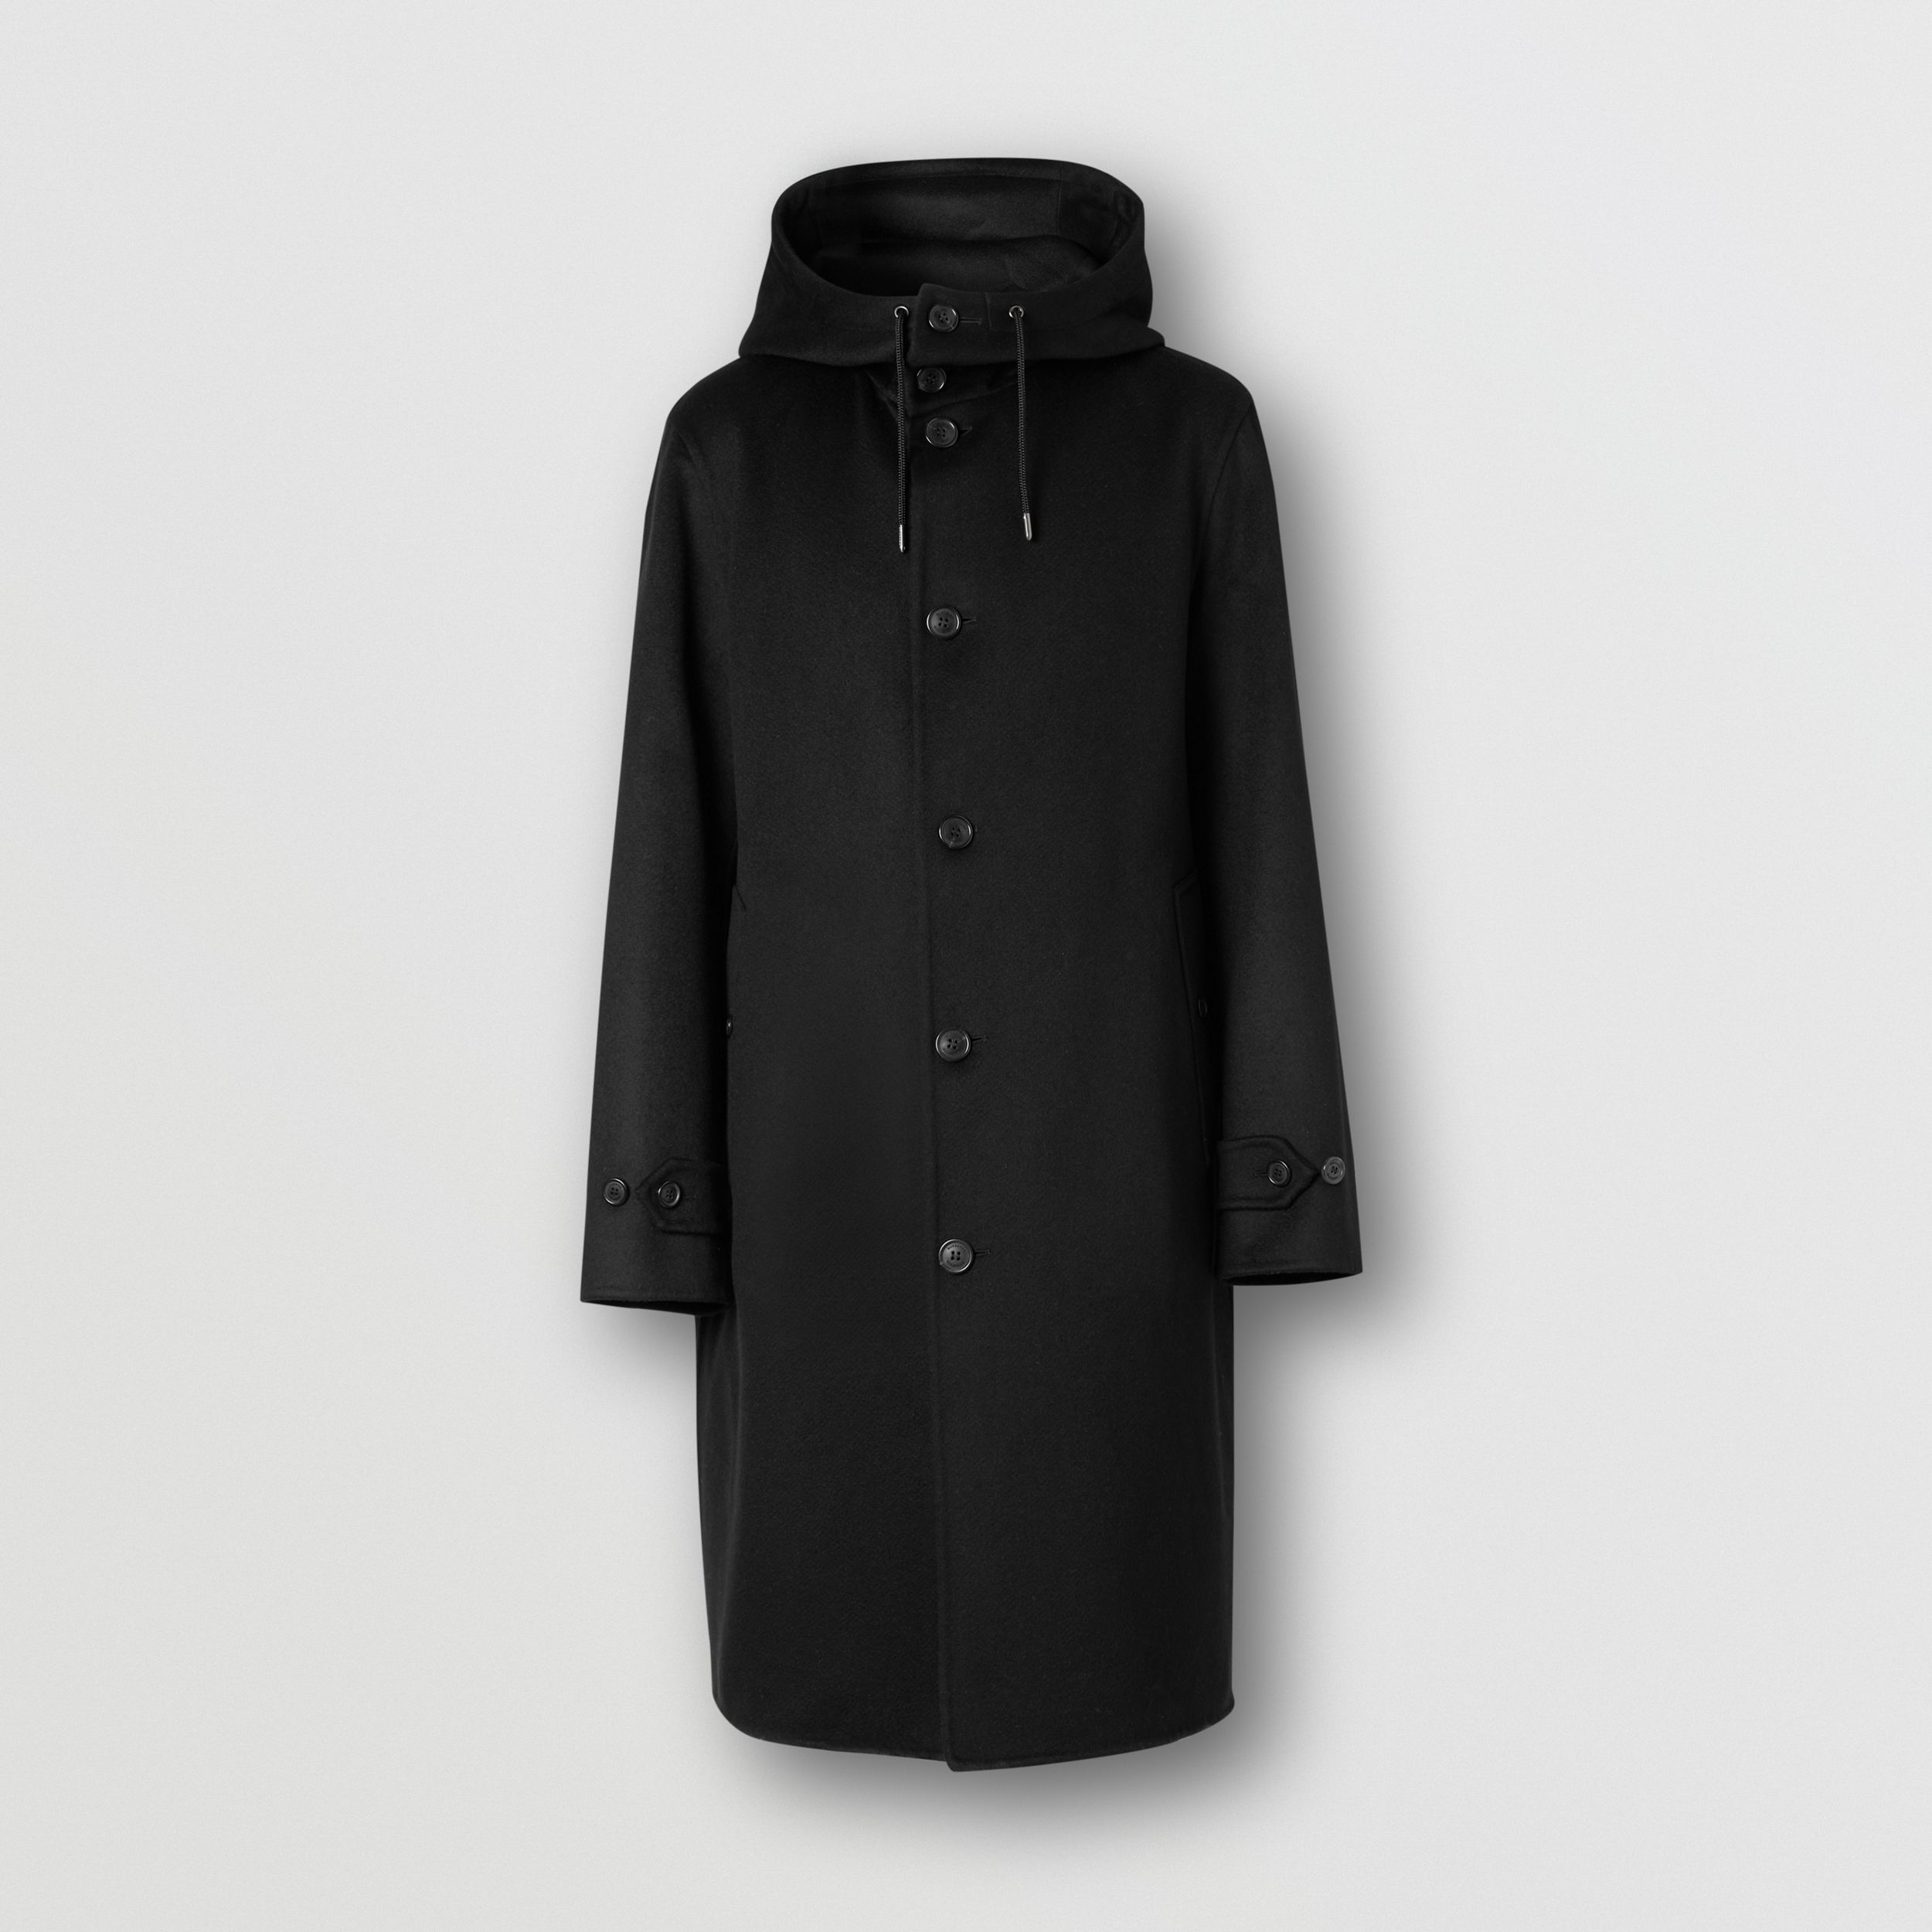 Double-faced Cashmere Hooded Coat in Black - Men | Burberry - 4